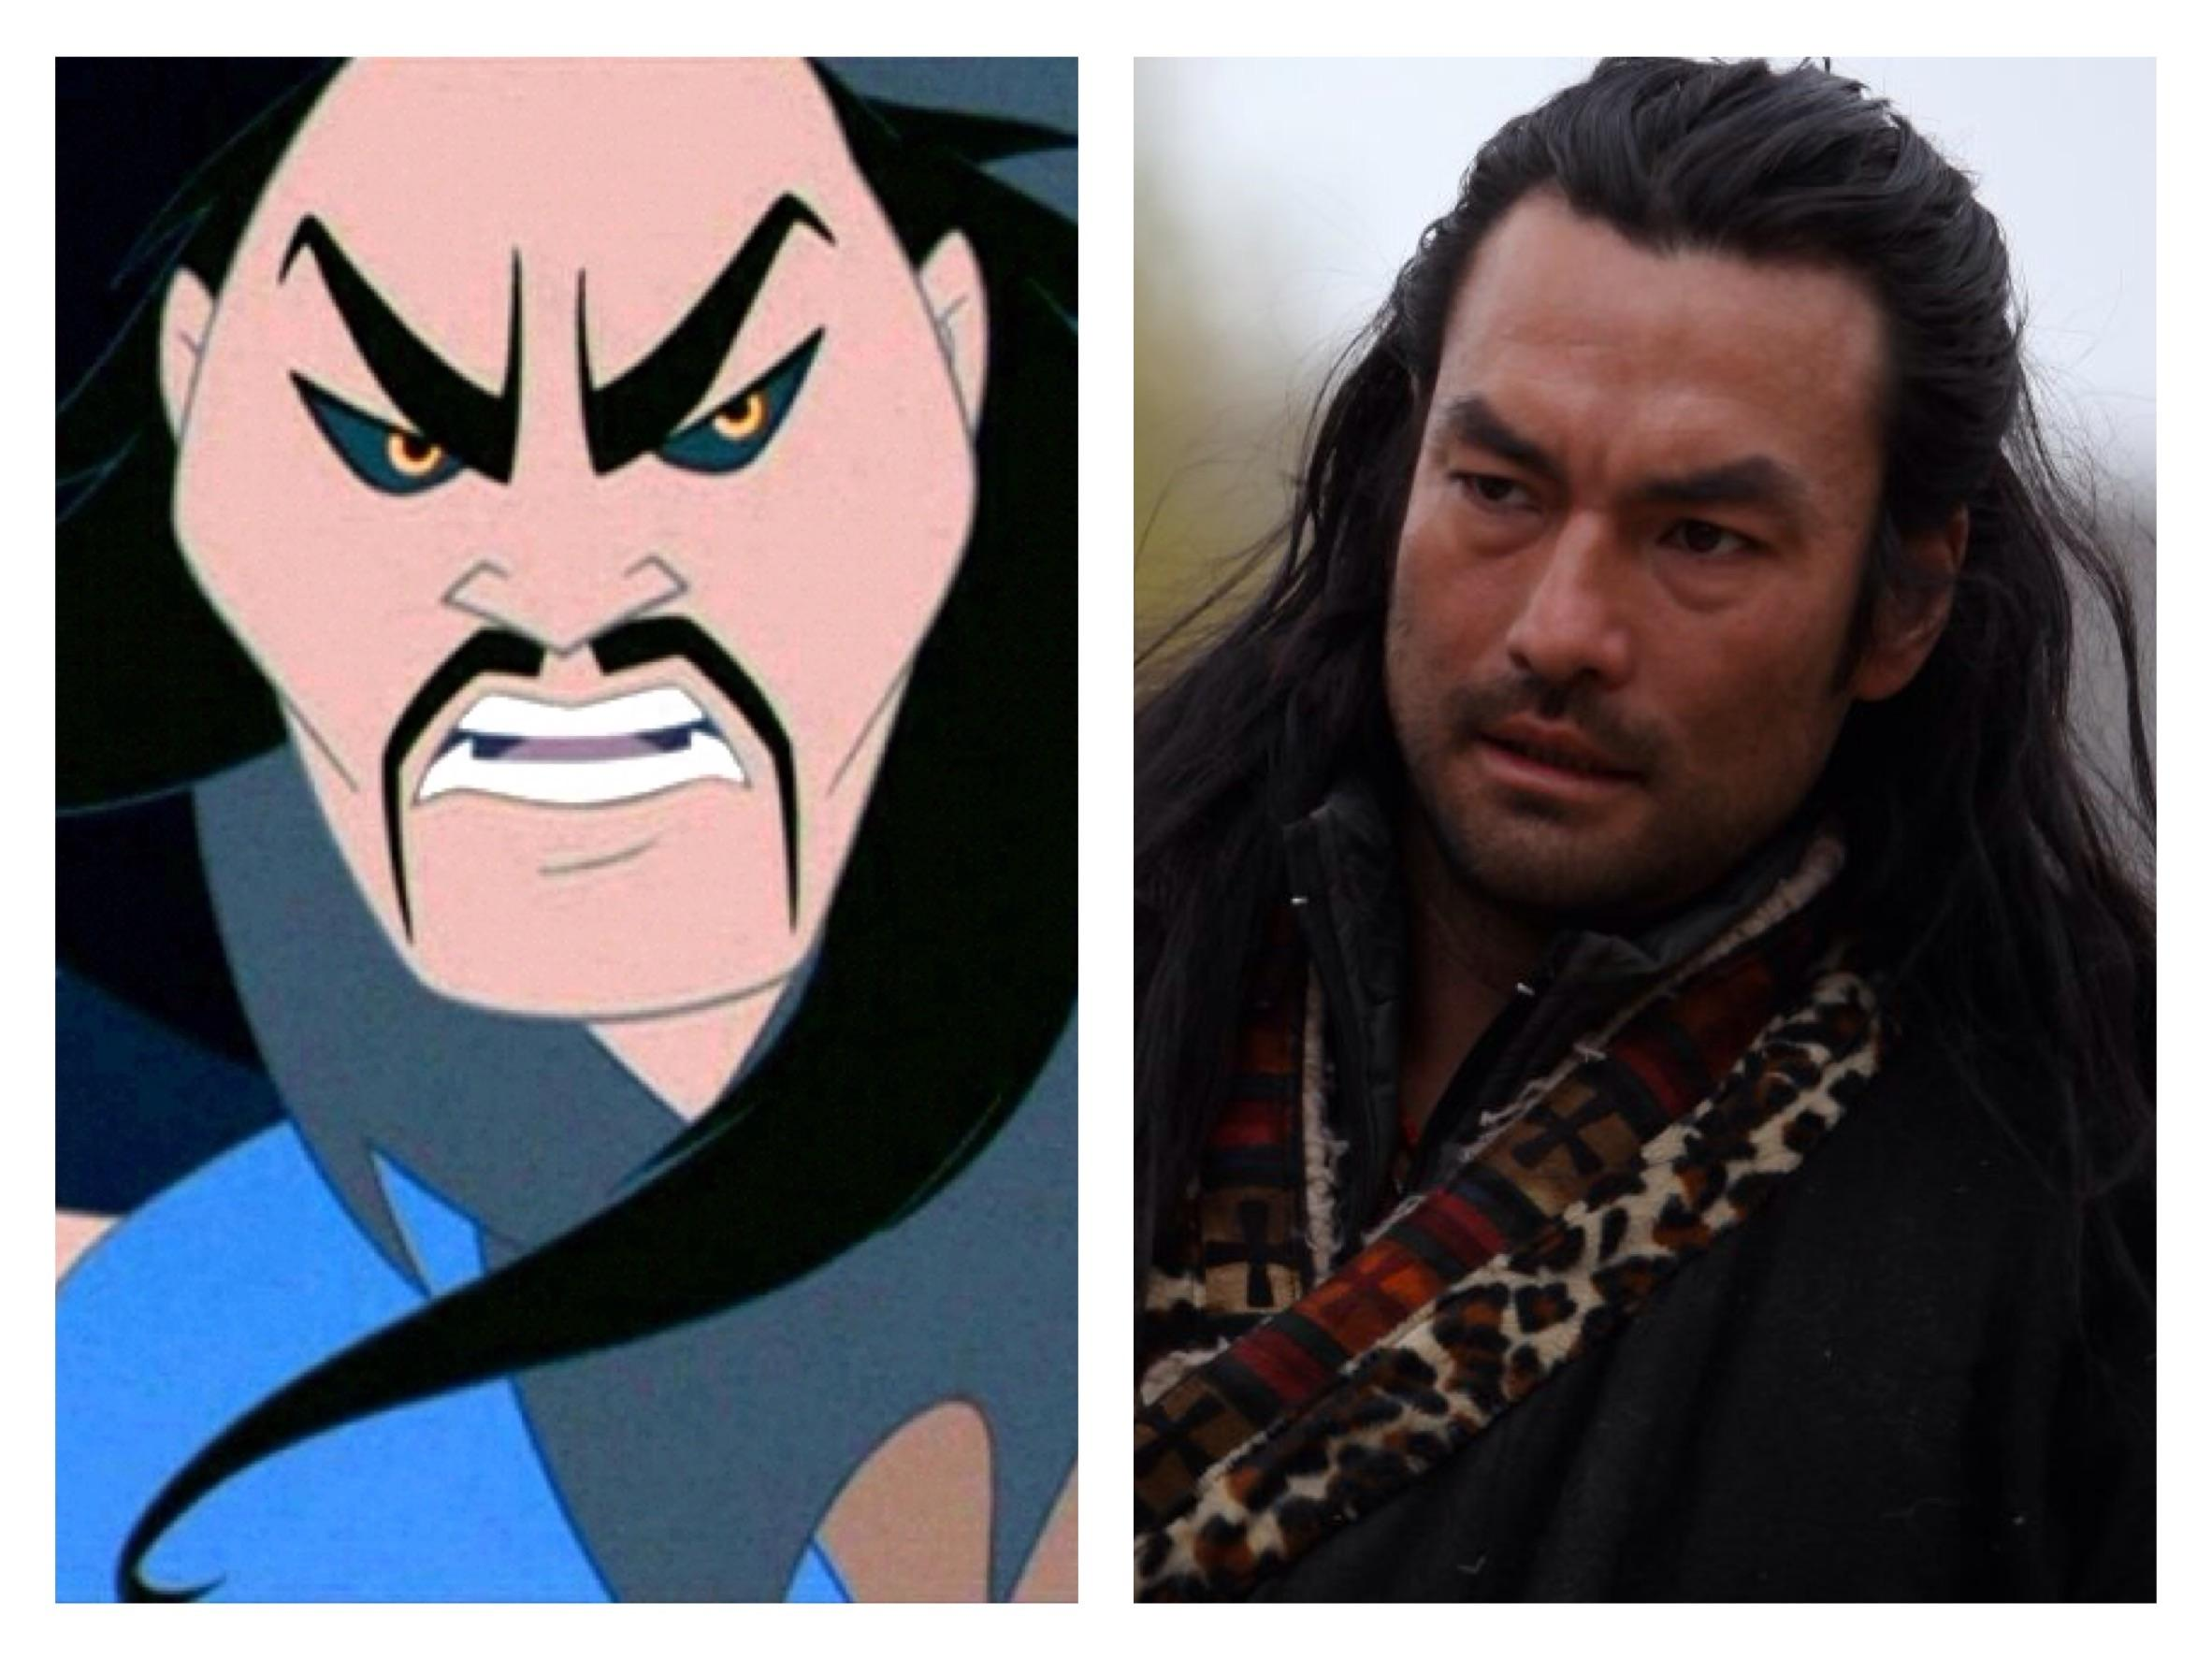 With His Intimidating Facial Features And Some Added Makeup McInnis Could Very Easily Assume The Role Of Shang Yu